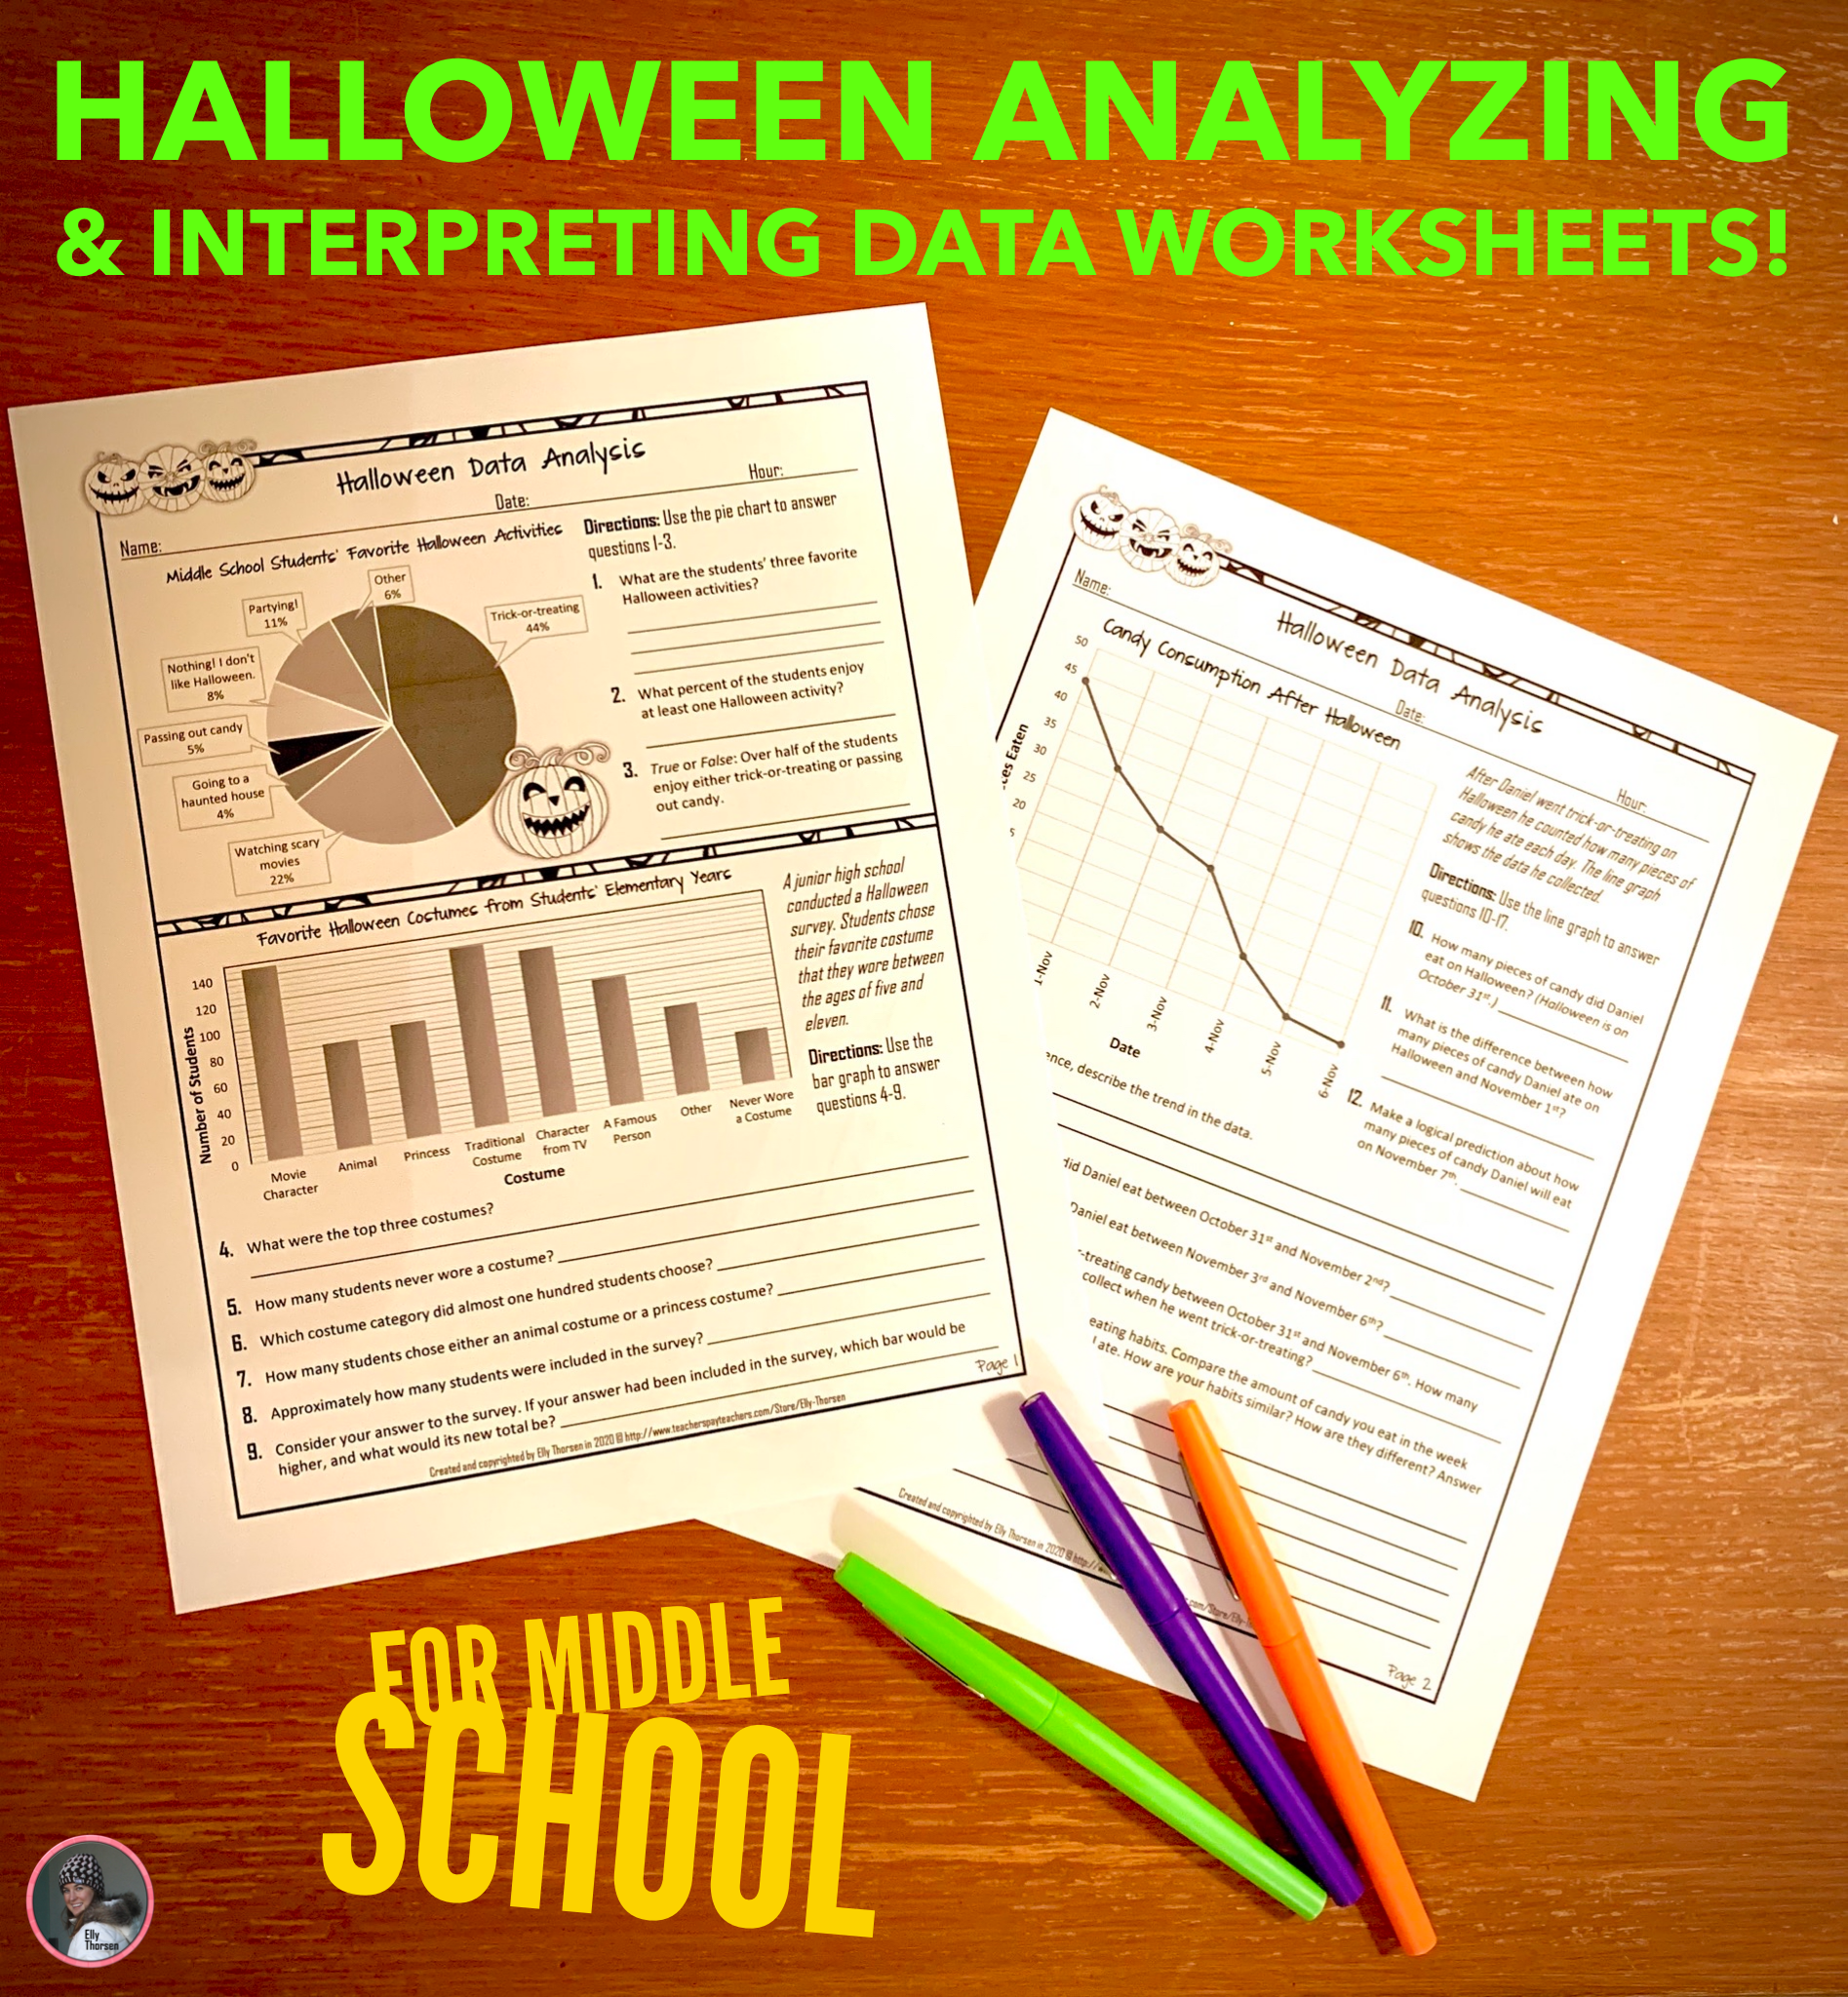 Halloweenyzing And Interpreting Data Worksheet For